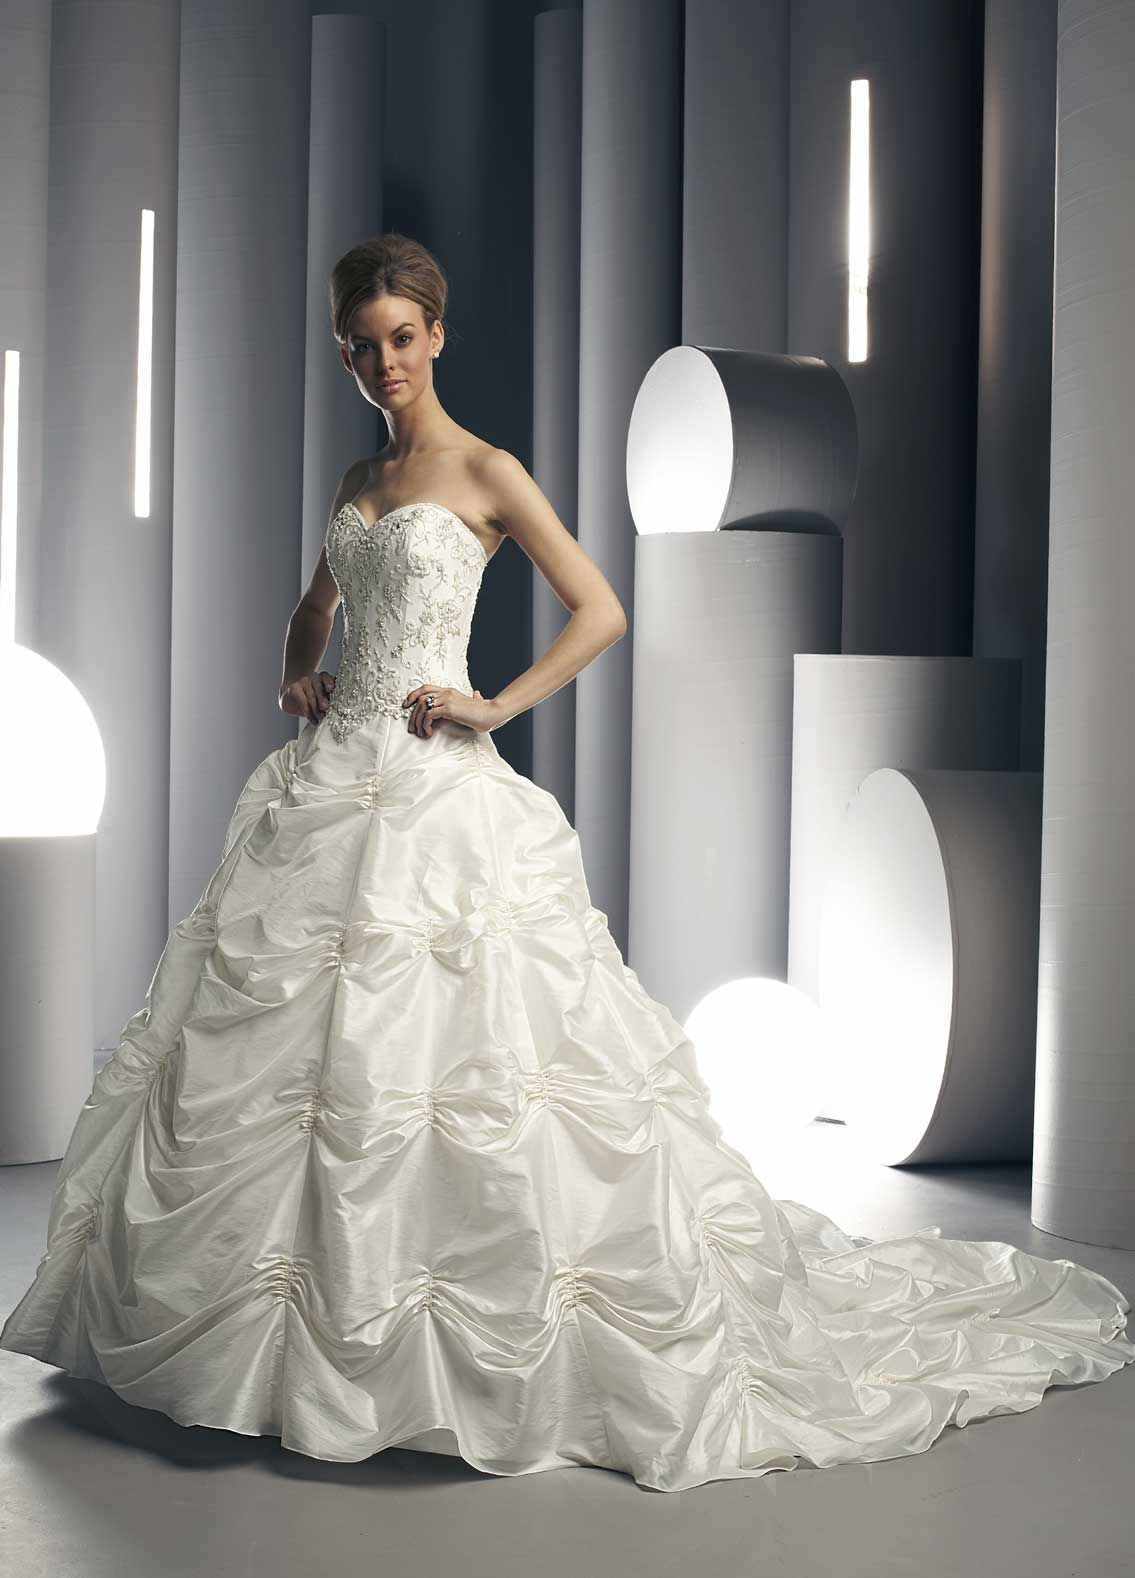 Taffeta Wedding gown, starburst gathers and chapel length train.